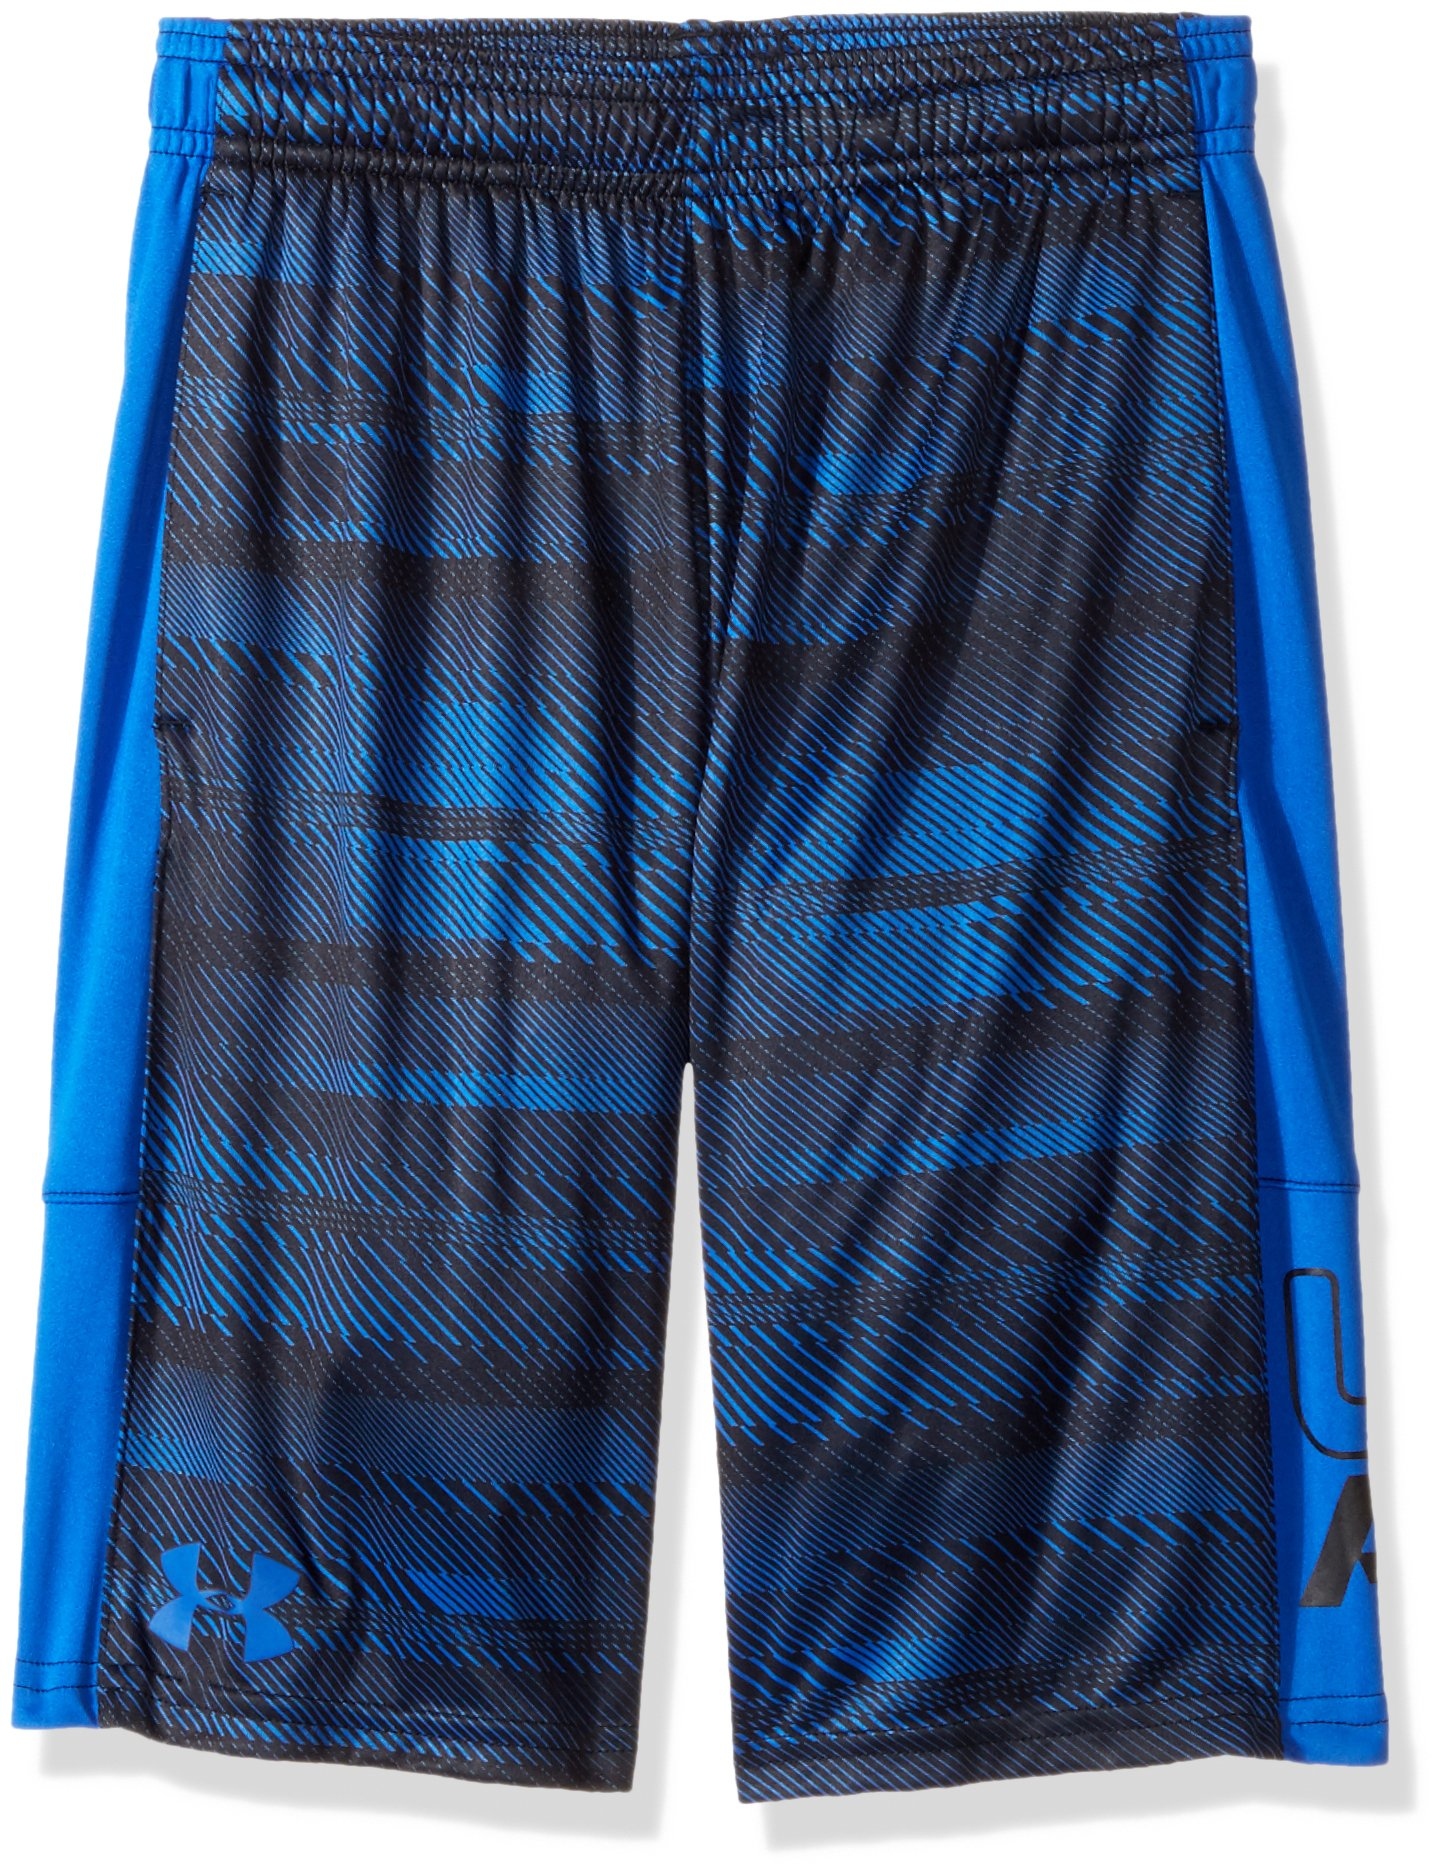 Under Armour Boys' Instinct Printed Shorts, Ultra Blue /Black Youth Small by Under Armour